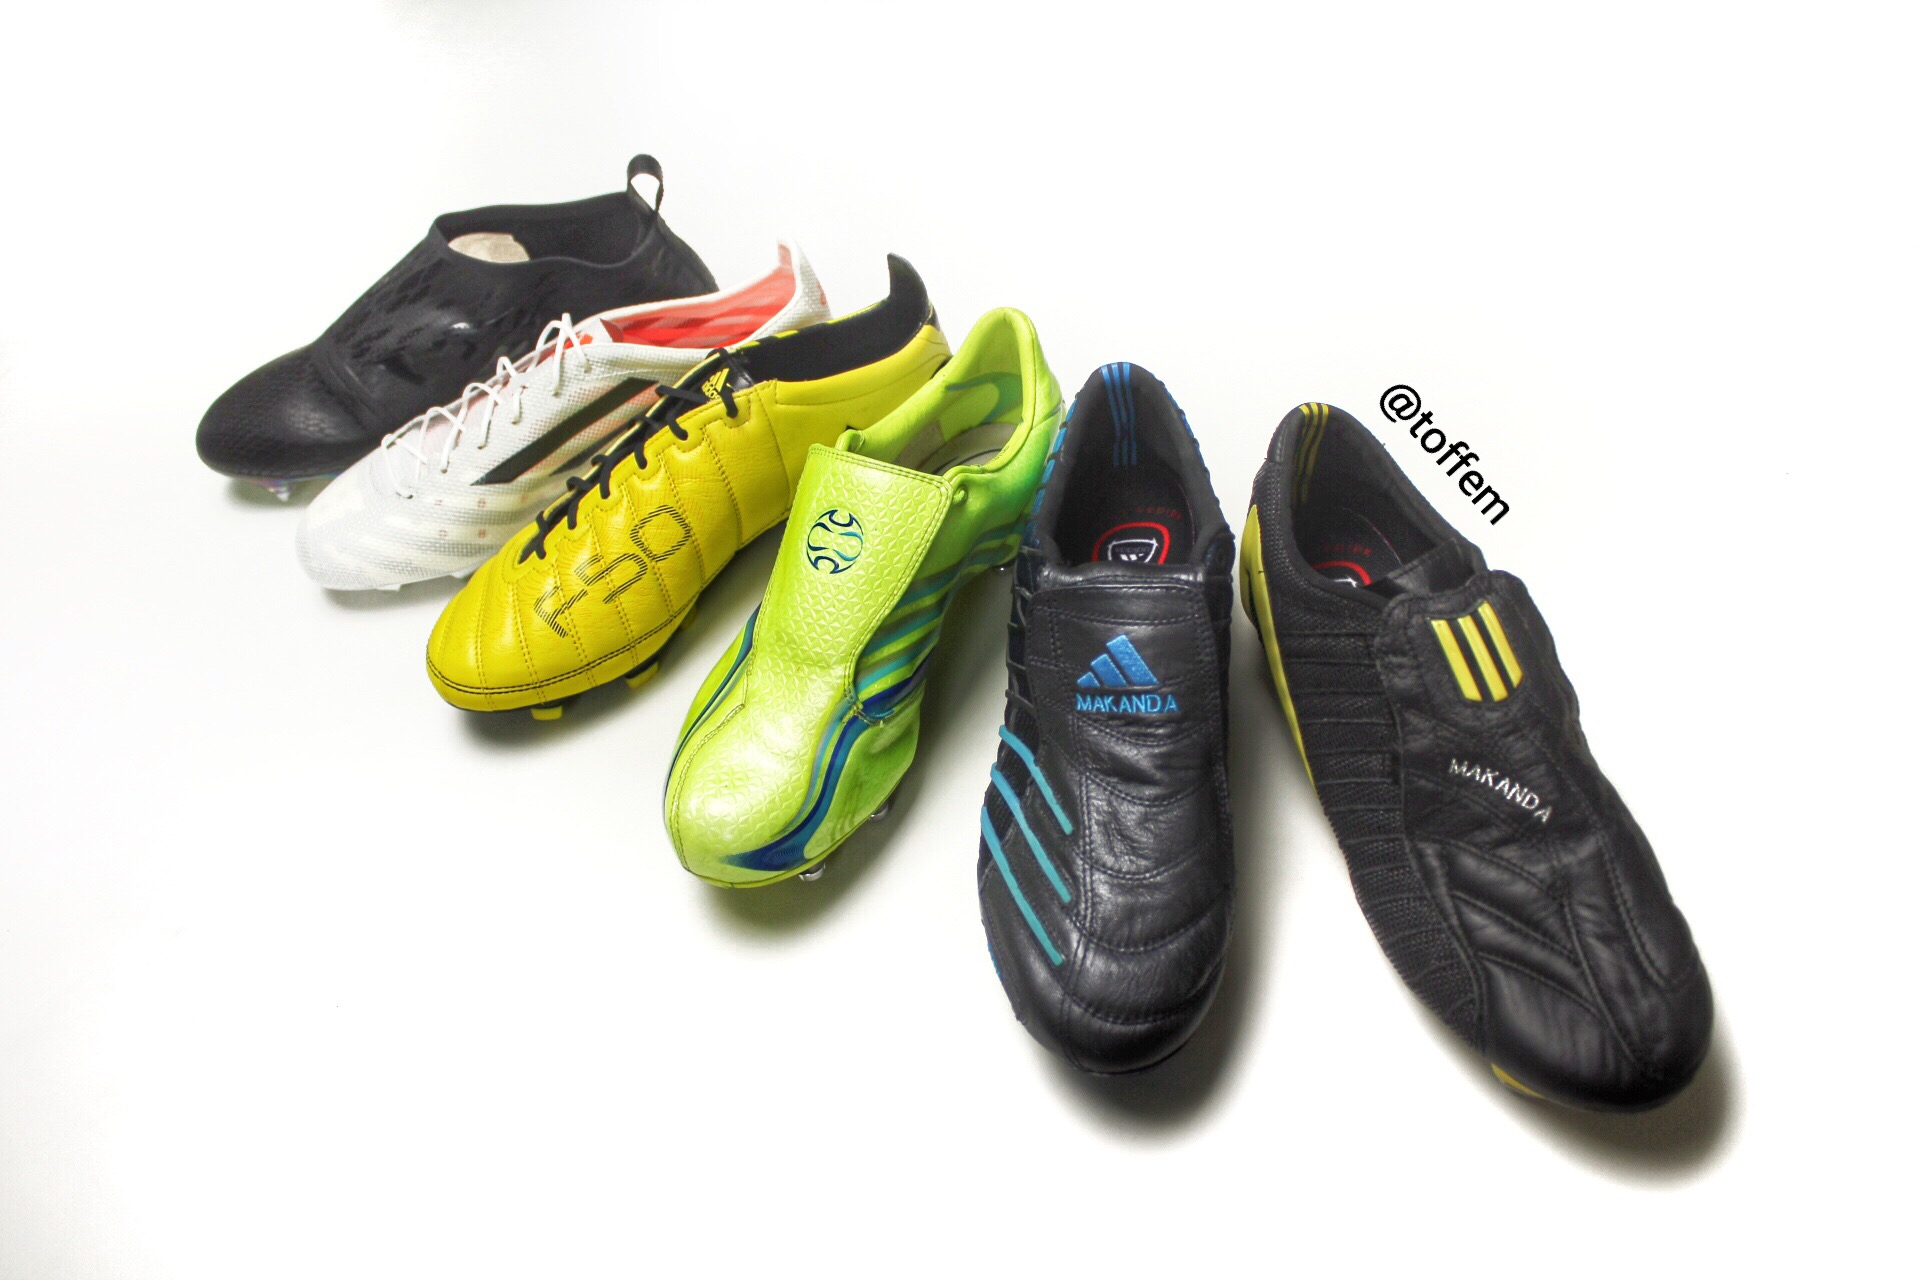 8a5adf427 The Adidas F50 range was a succes for many years. The first boot came out  in 2003 with the cool launch colourway black and yellow